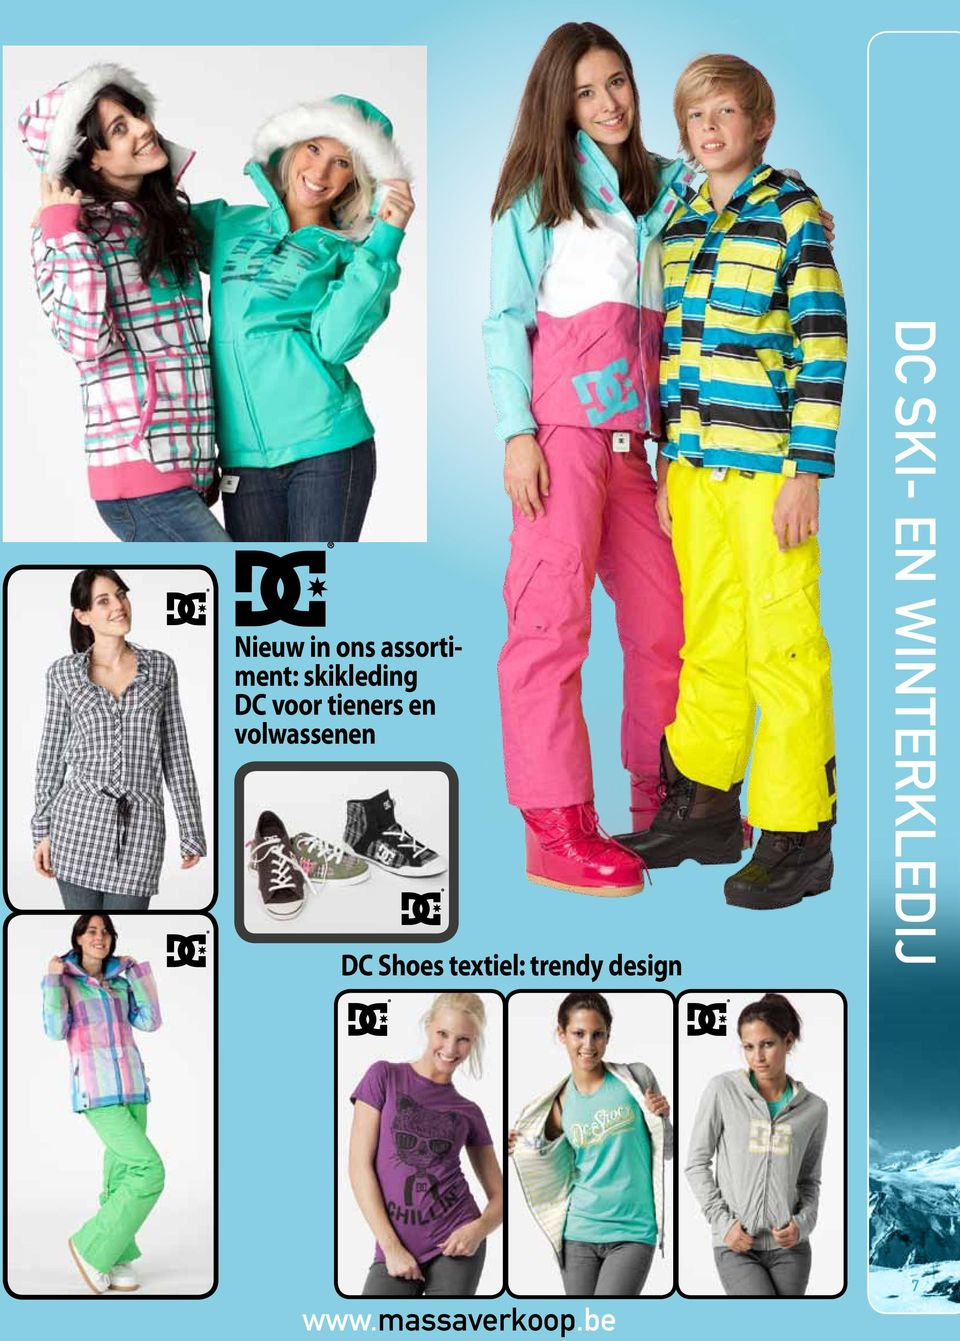 Shoes textiel: trendy design DC ski-